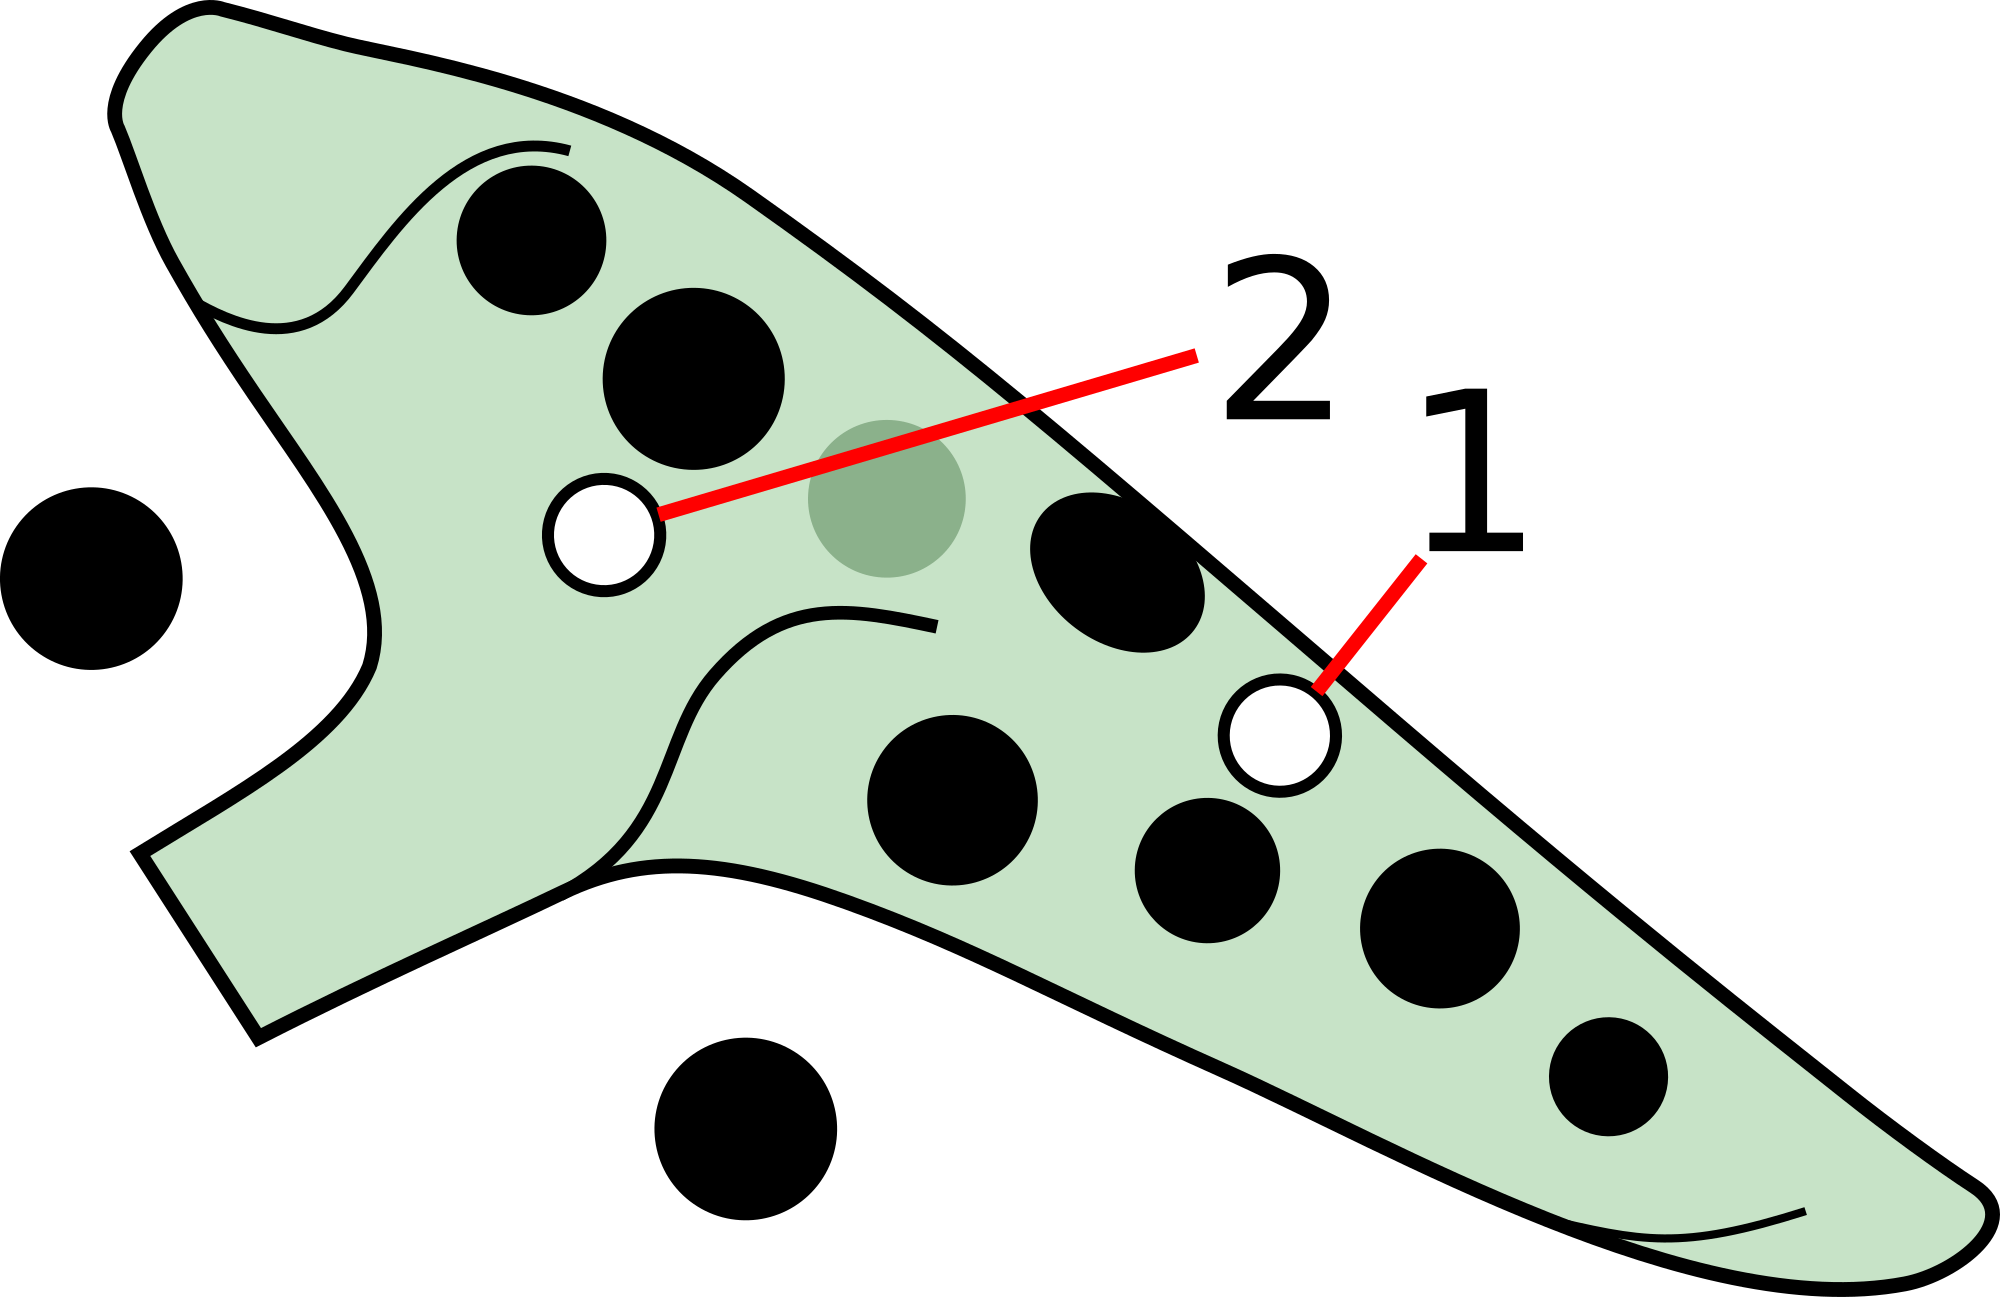 A 12 hole ocarina with japanese fingering, the subholes are on the right hand middle and left hand middle finger